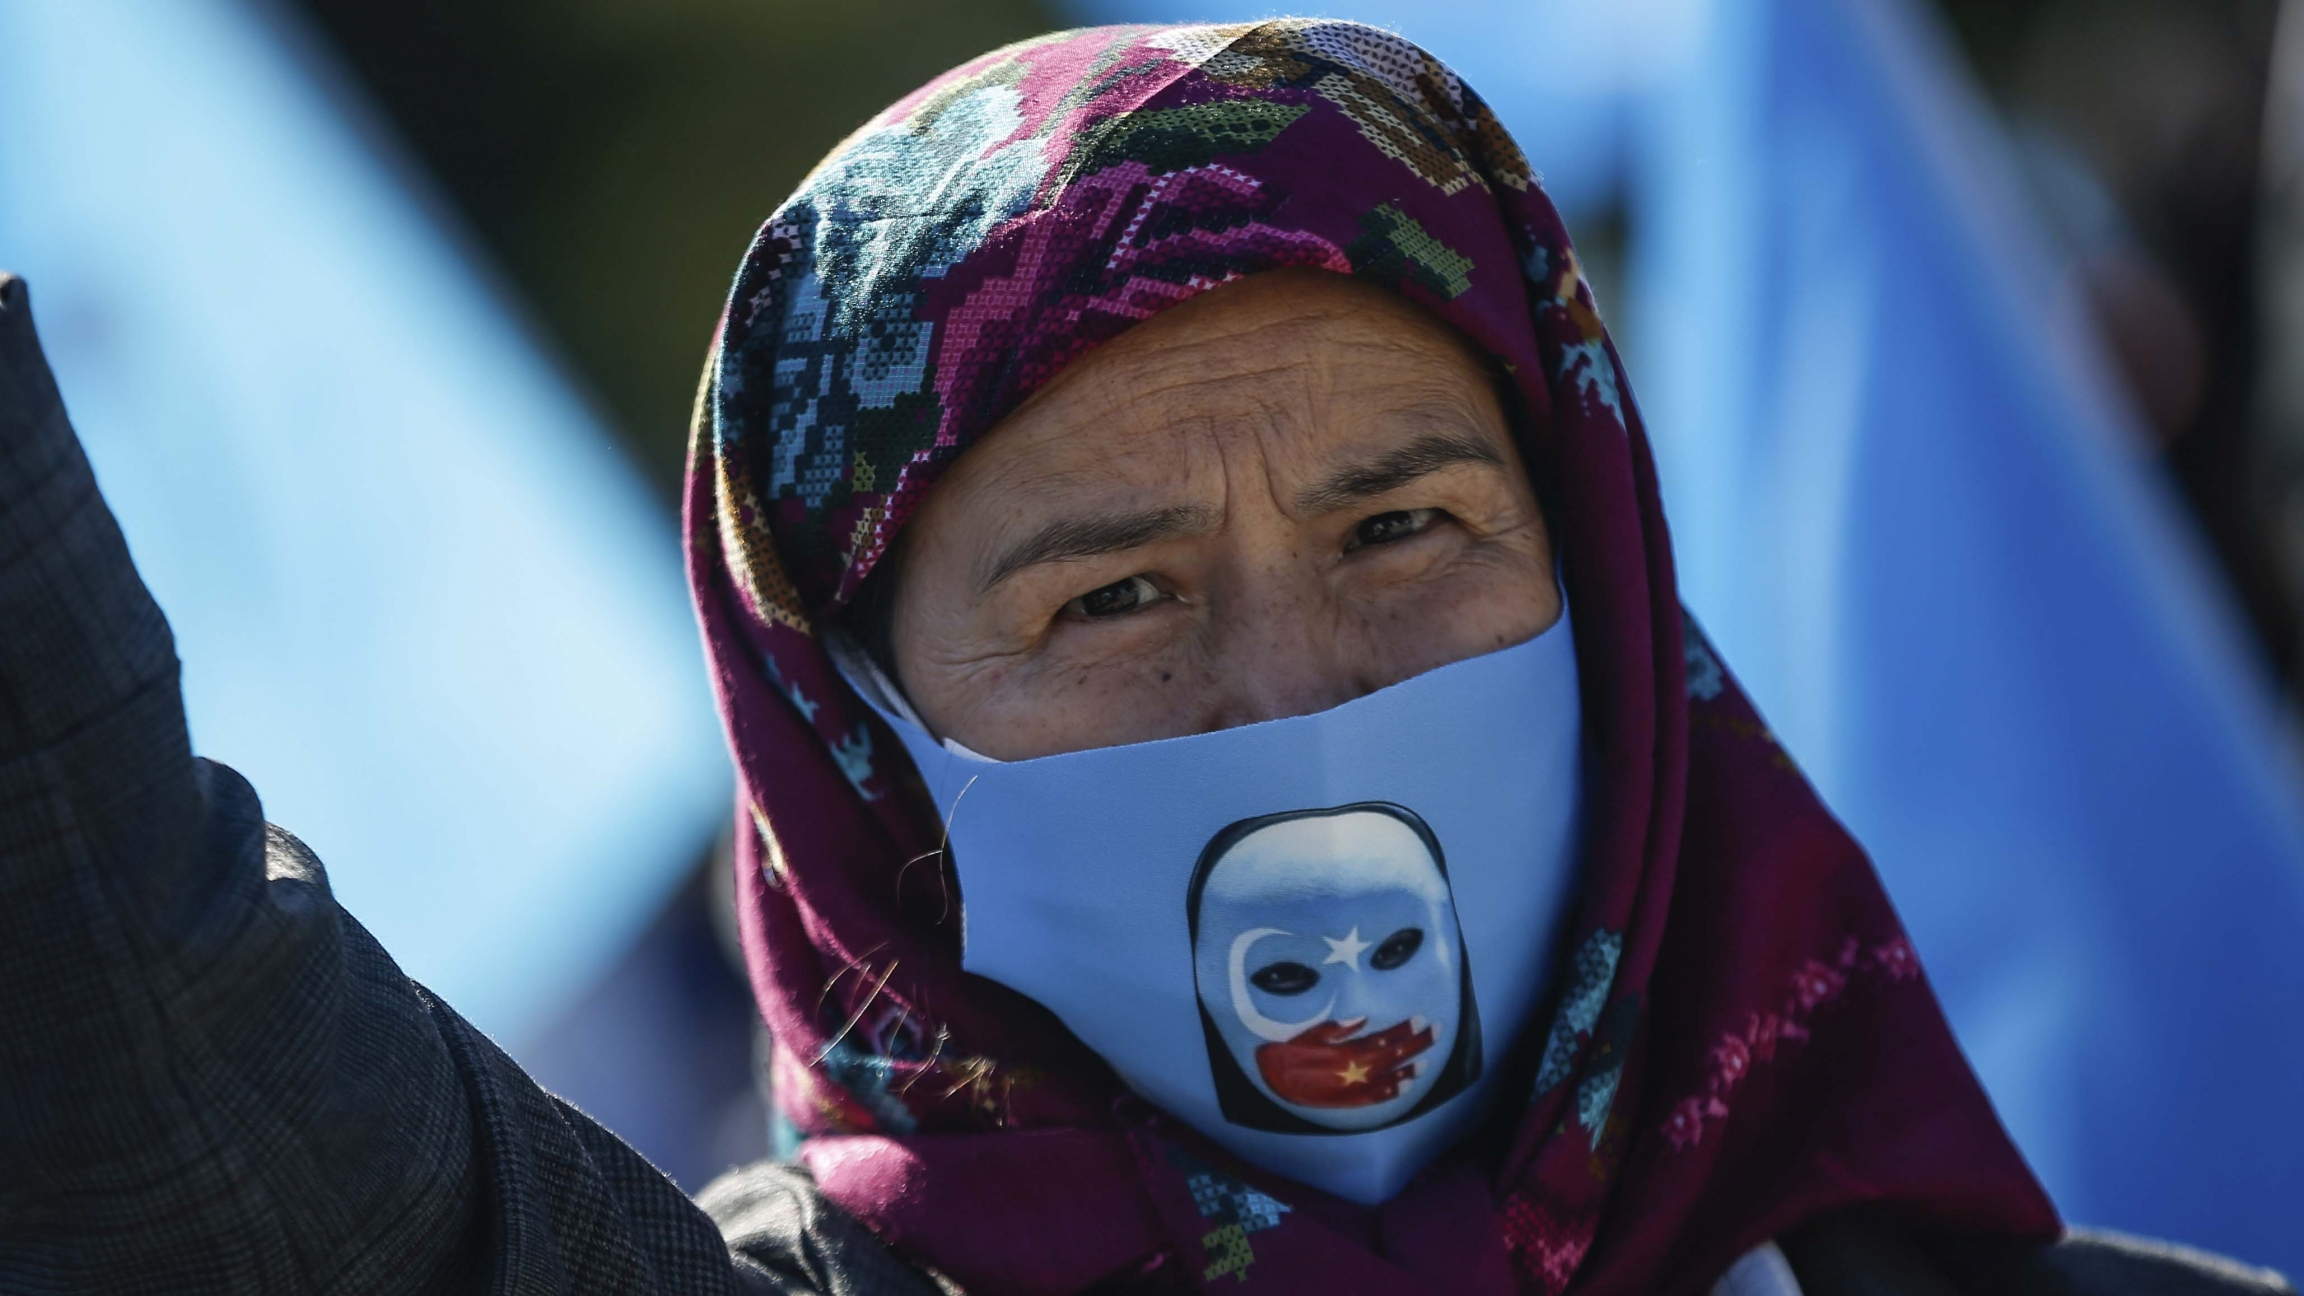 A protester from the Uighur community living in Turkey, participates in a protest in Istanbul, Oct. 1, 2020, against what they allege is oppression by the Chinese government to Muslim Uighurs in far-western Xinjiang province.